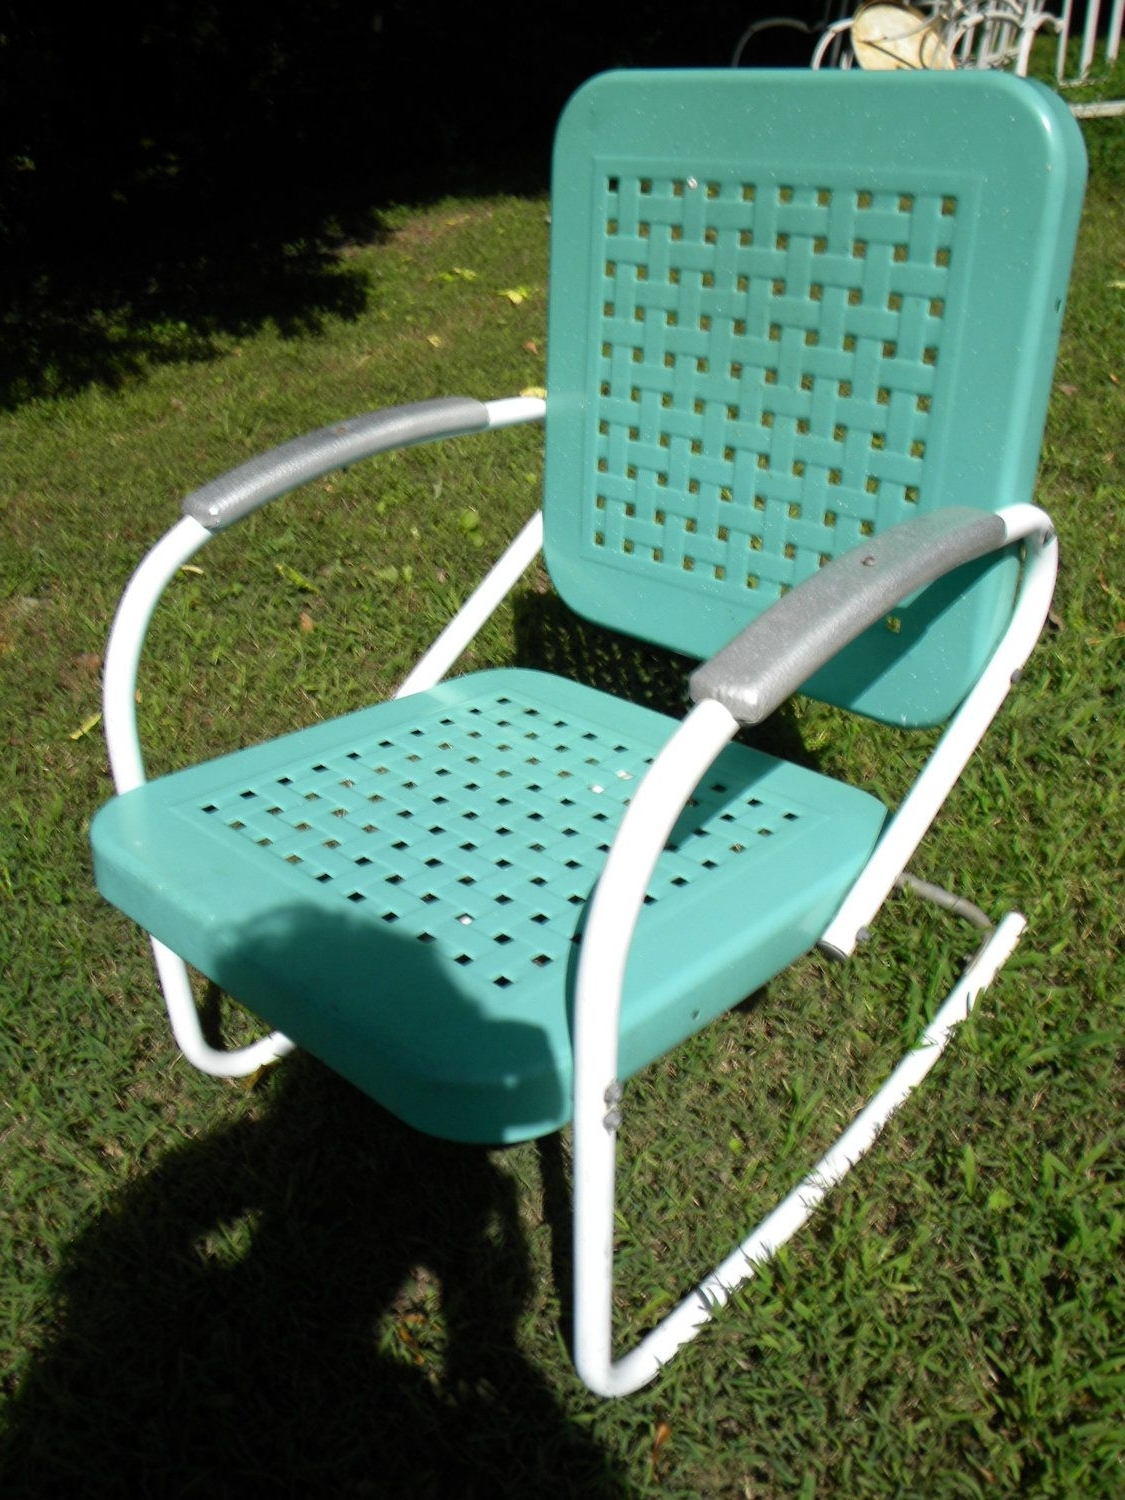 Vtg 50S 60S Retro Outdoor Metal Lawn Patio Porch Rocking Chair Inside Preferred Vintage Metal Rocking Patio Chairs (View 15 of 15)